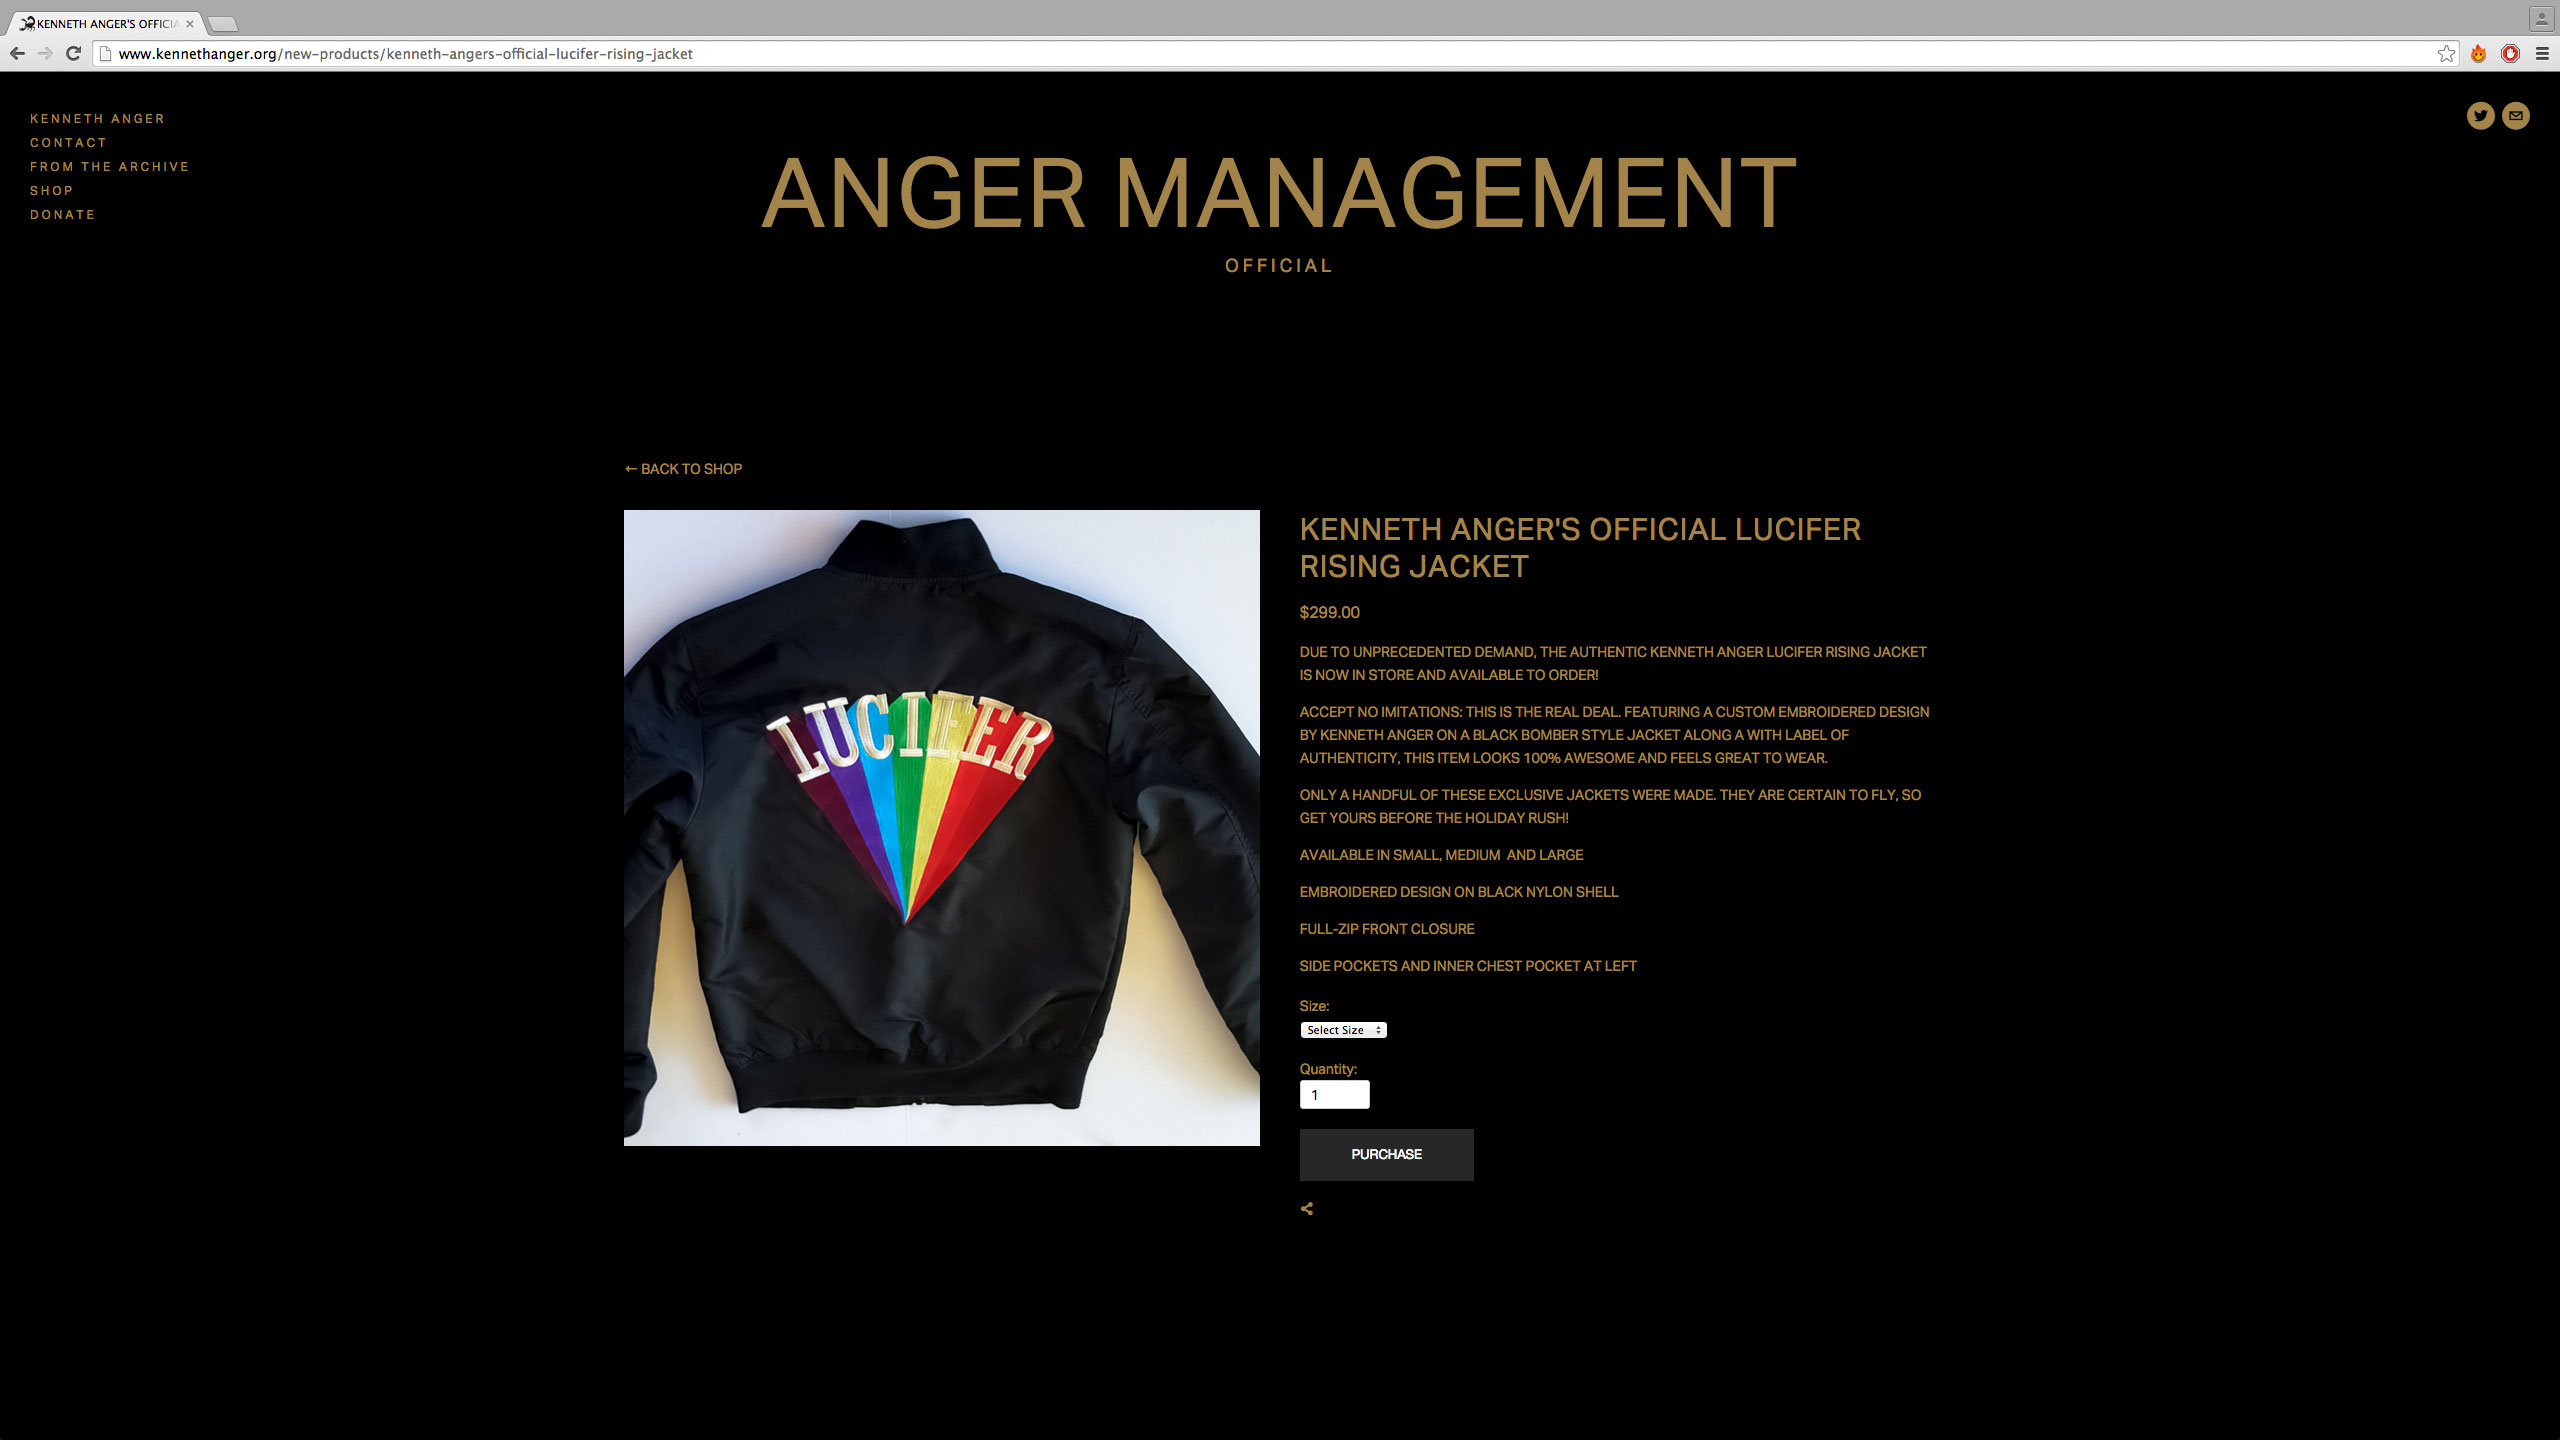 KENNETH ANGER OFFICIAL LUCIFER RISING JACKET